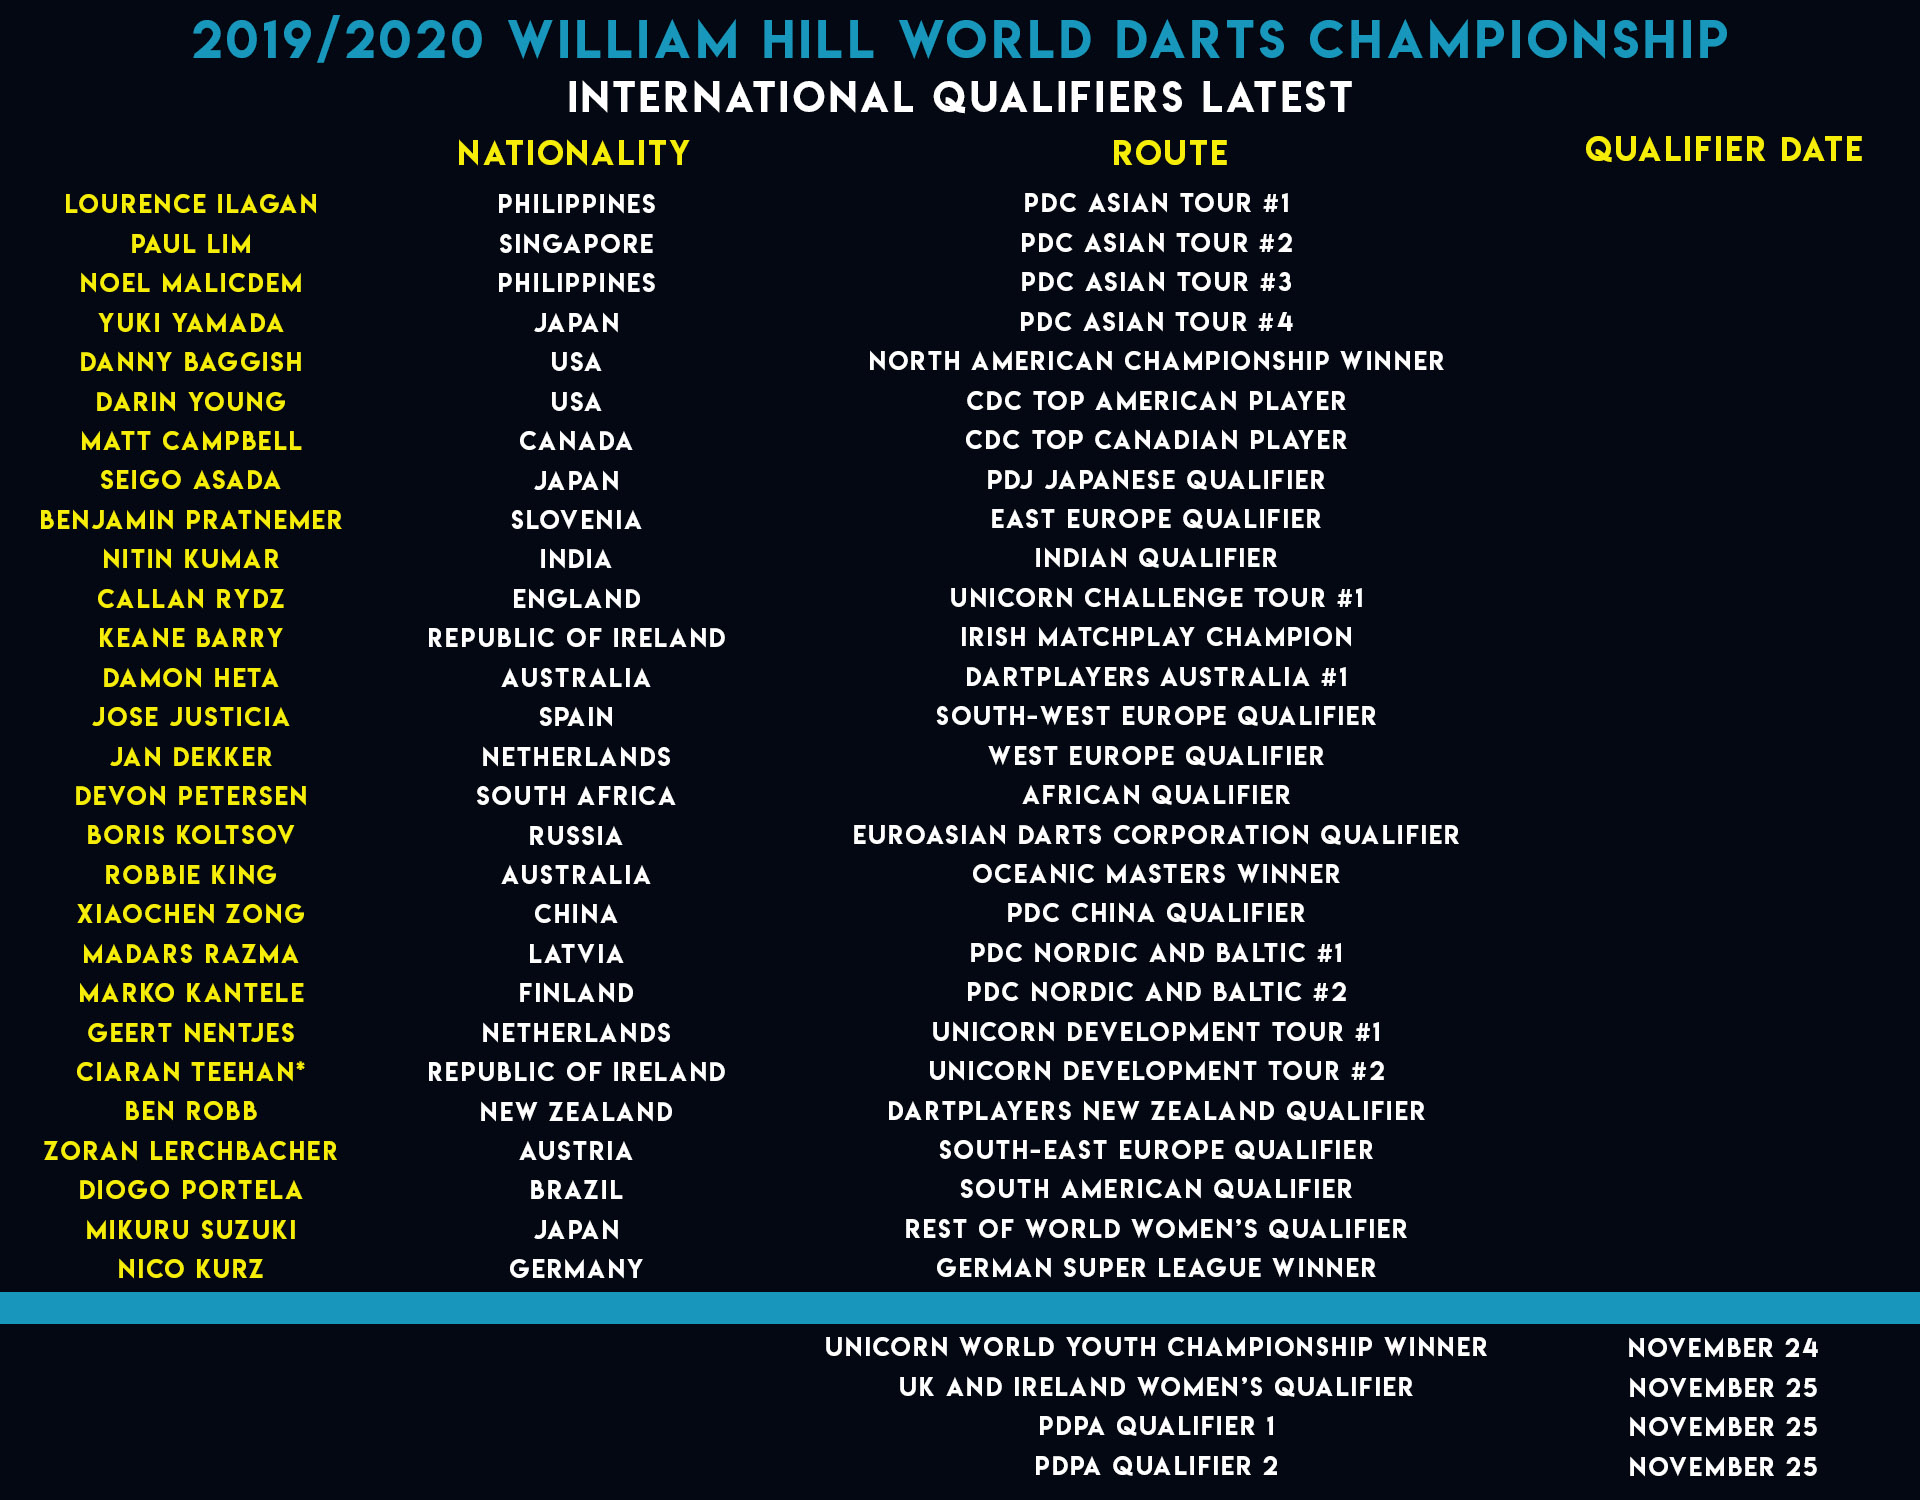 World Championship International Qualifiers list (PDC)